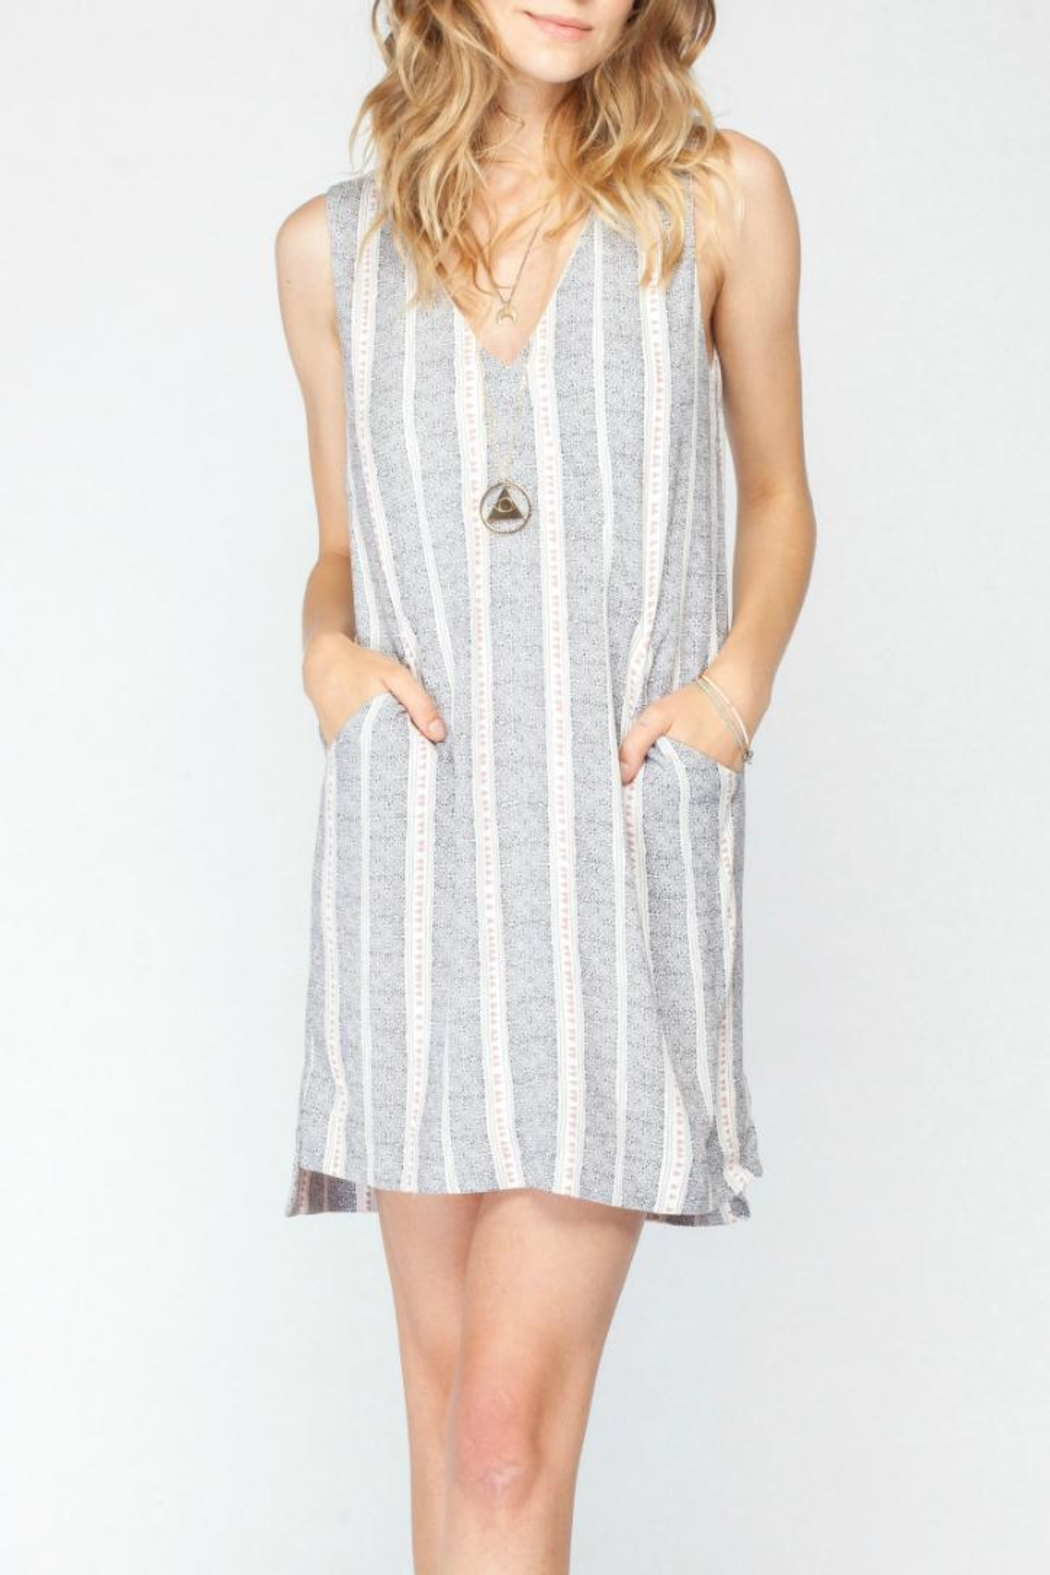 Gentle Fawn Printed Shift Dress - Main Image